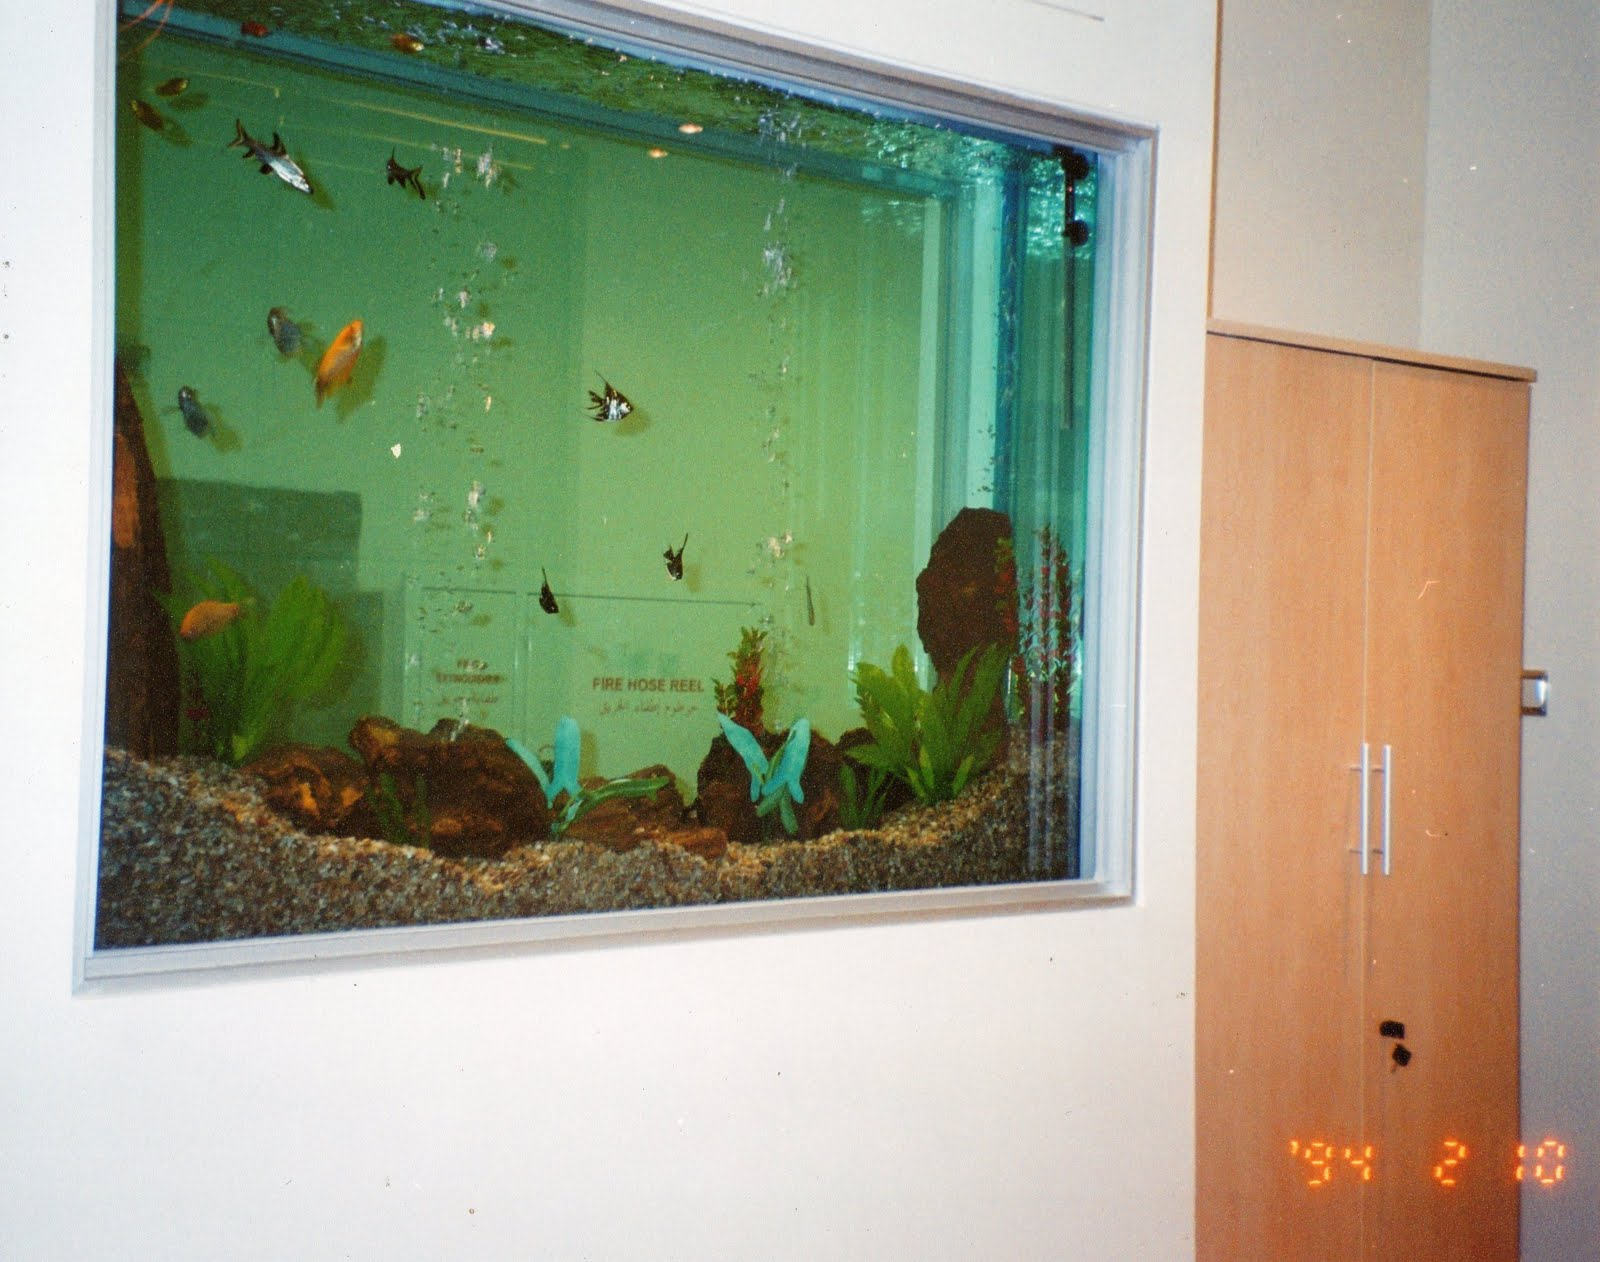 Fish aquarium karachi - Wall Built Aquariums